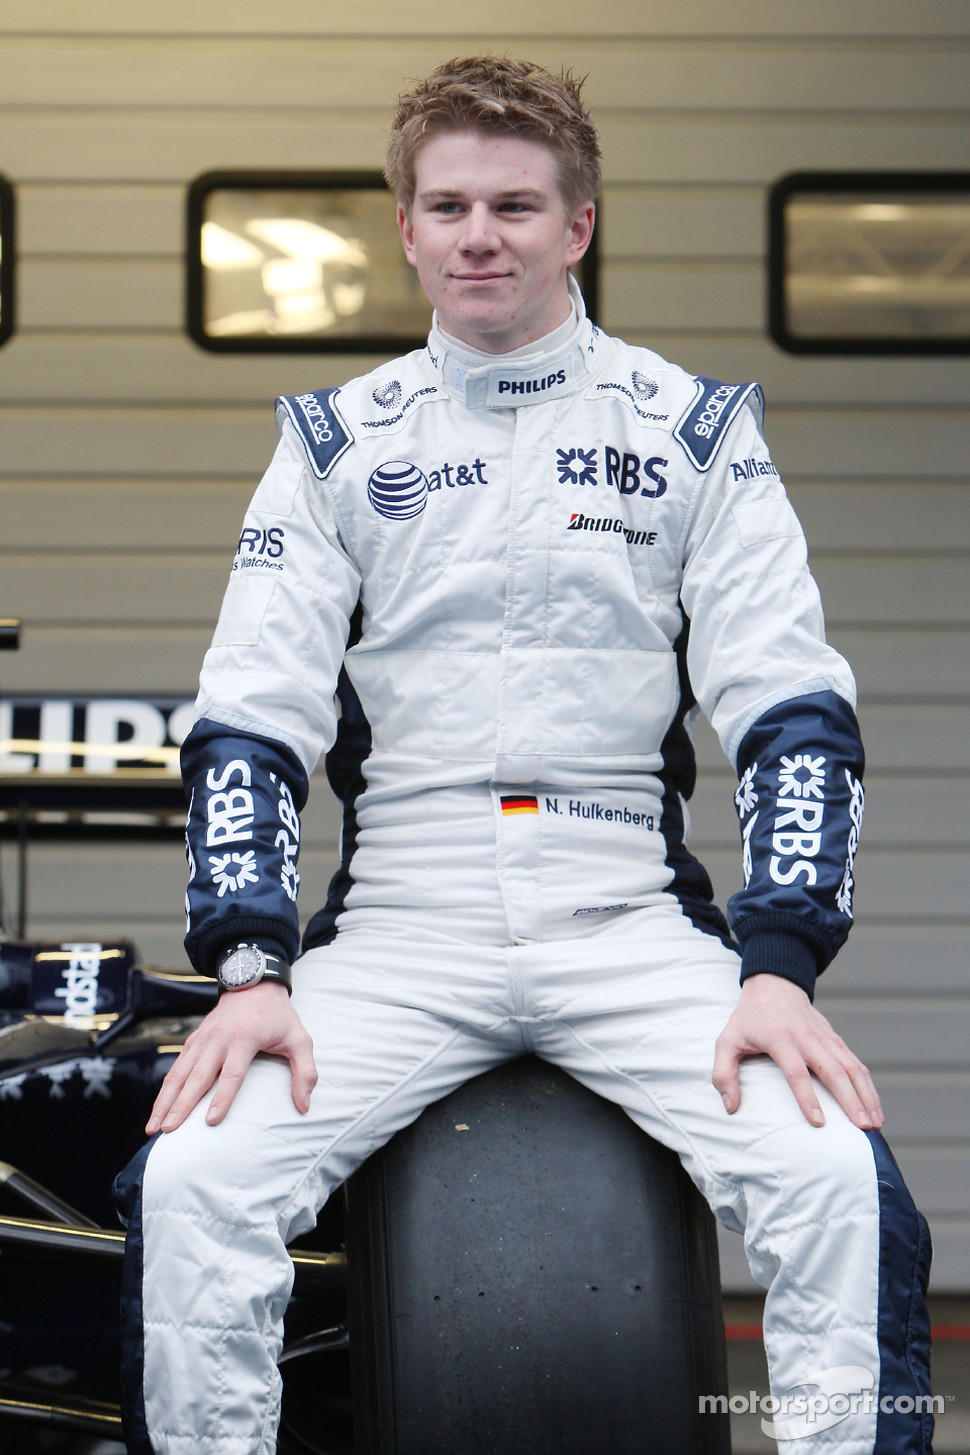 Nico Hulkenberg, test driver, with the the new Williams FW31